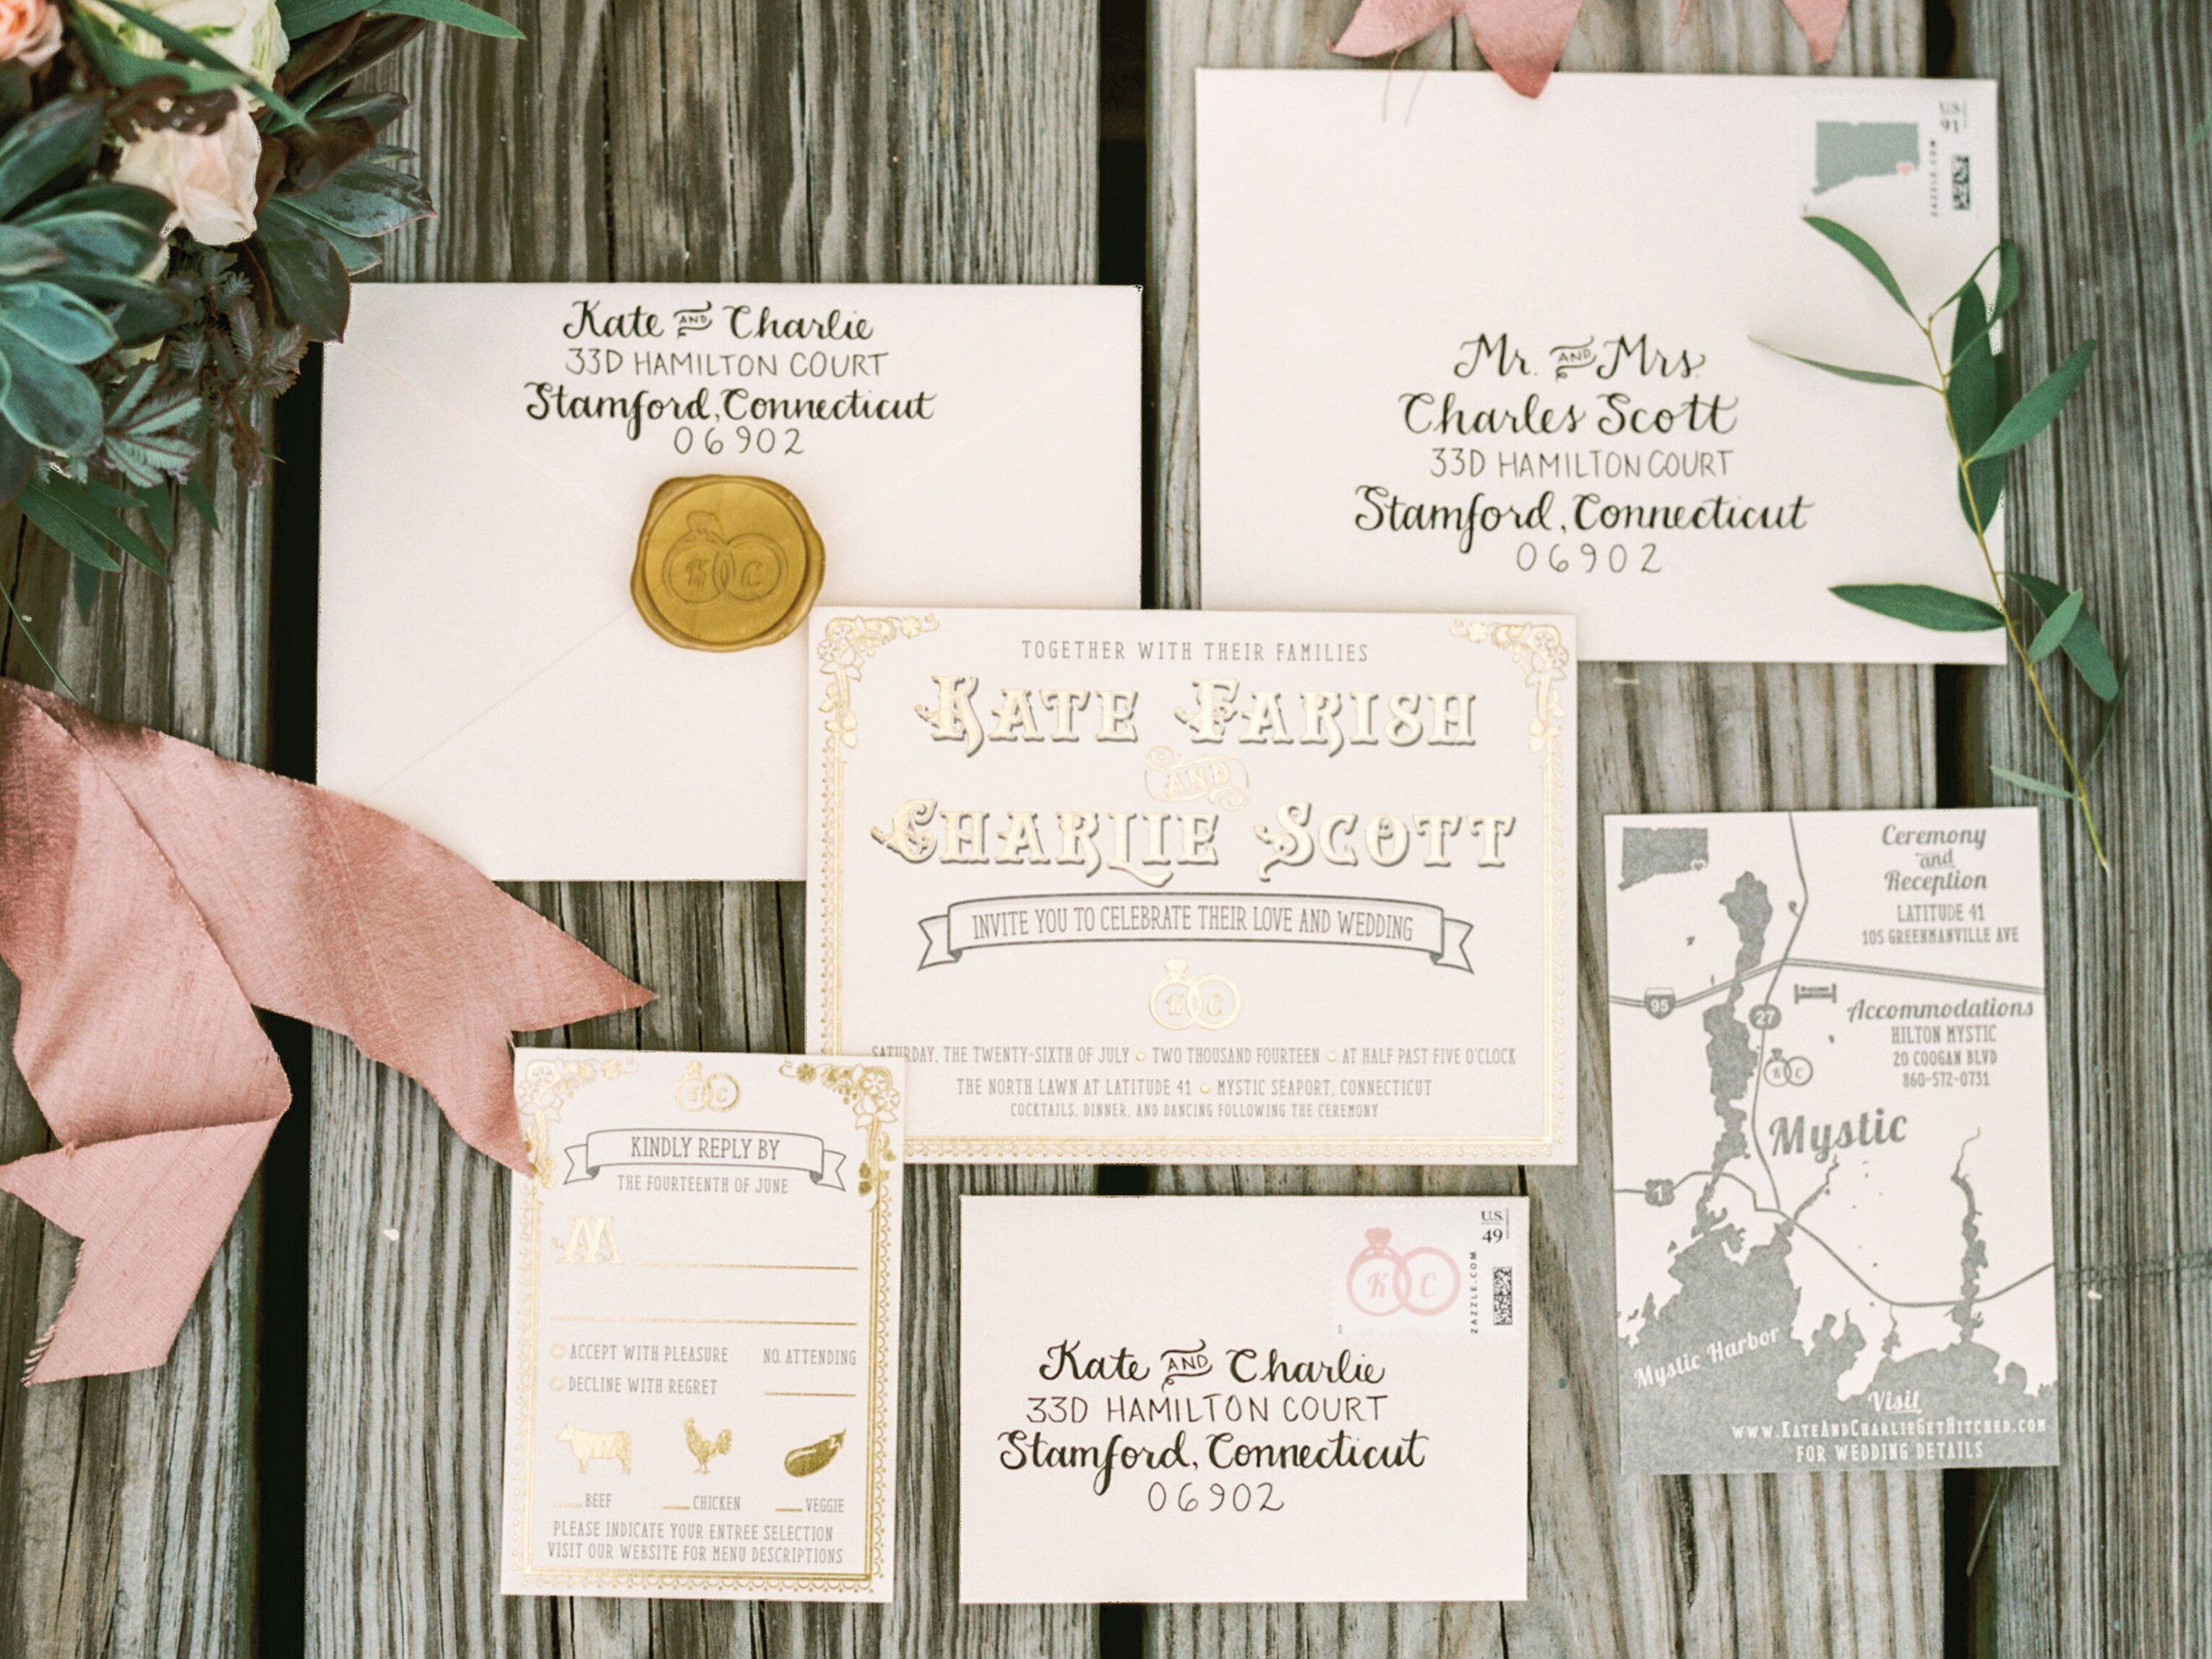 Wedding Invitations: A Complete Checklist